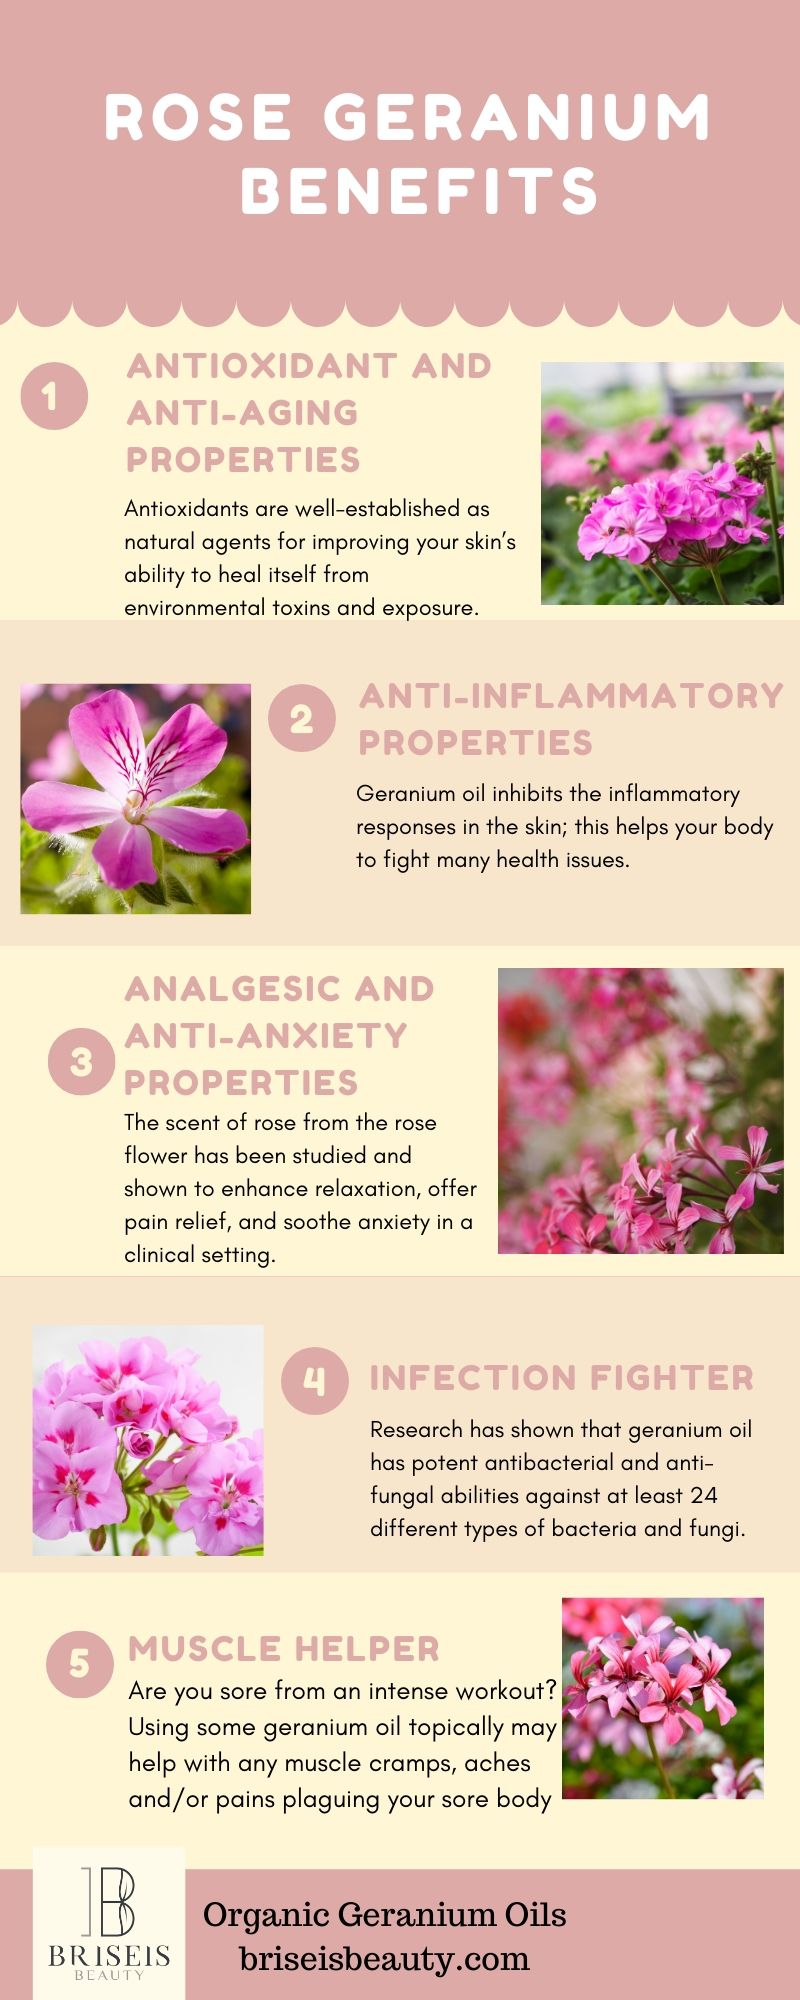 Learn About The Benefits Of Rose Geranium Rose Rosegeraniumbenefits Rose Geranium Geraniums Body Oil